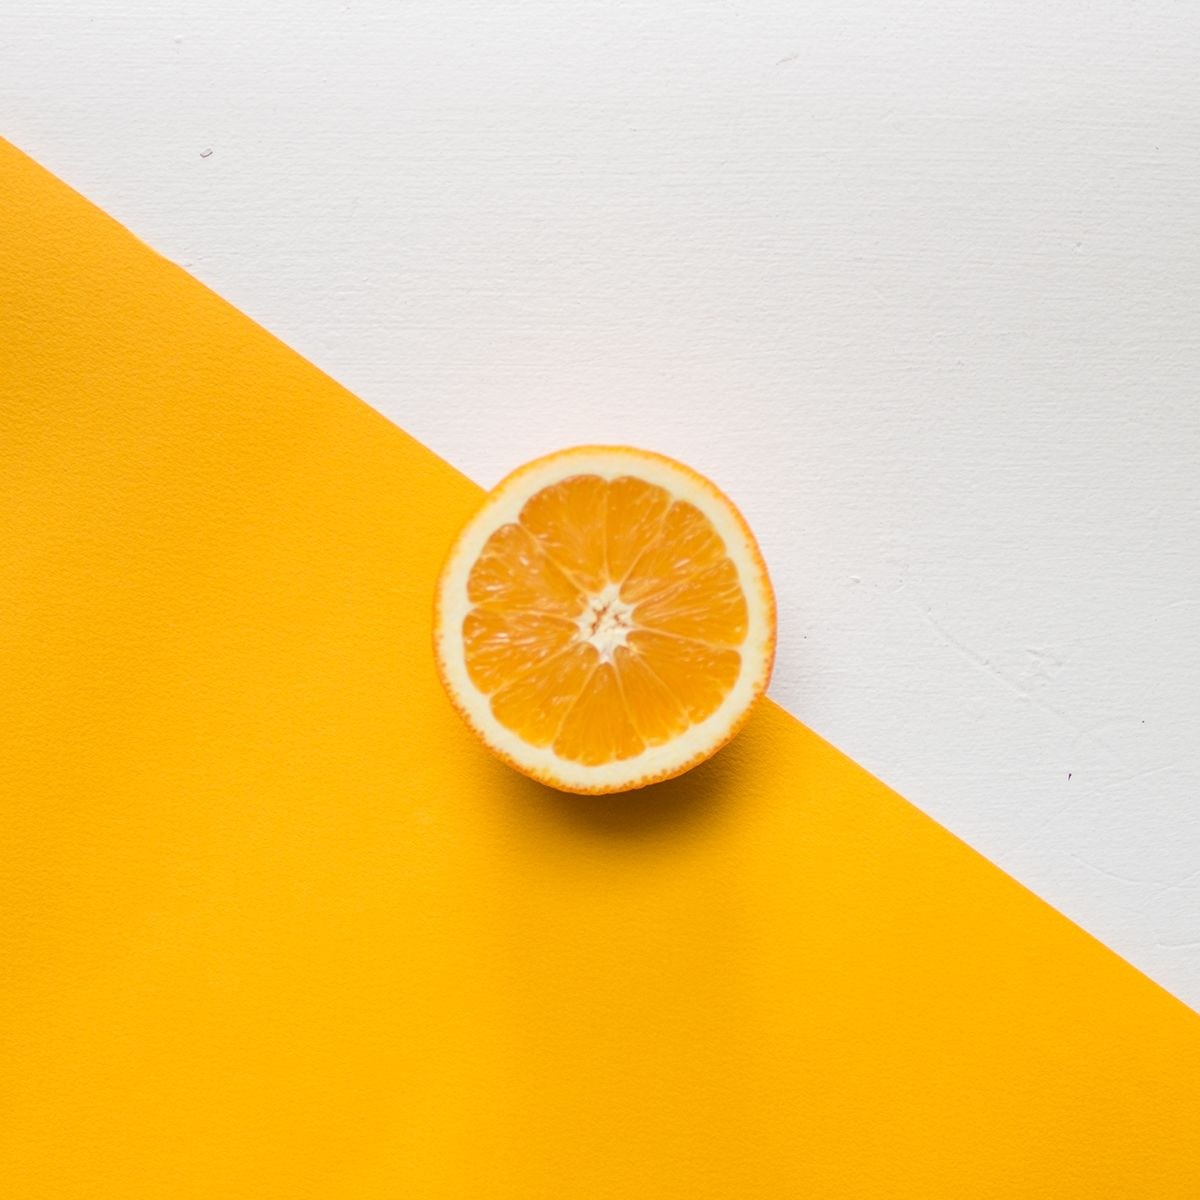 Minimalist Iphone Wallpaper Quotes A Collection Of Minimal Food Photography With Clean And